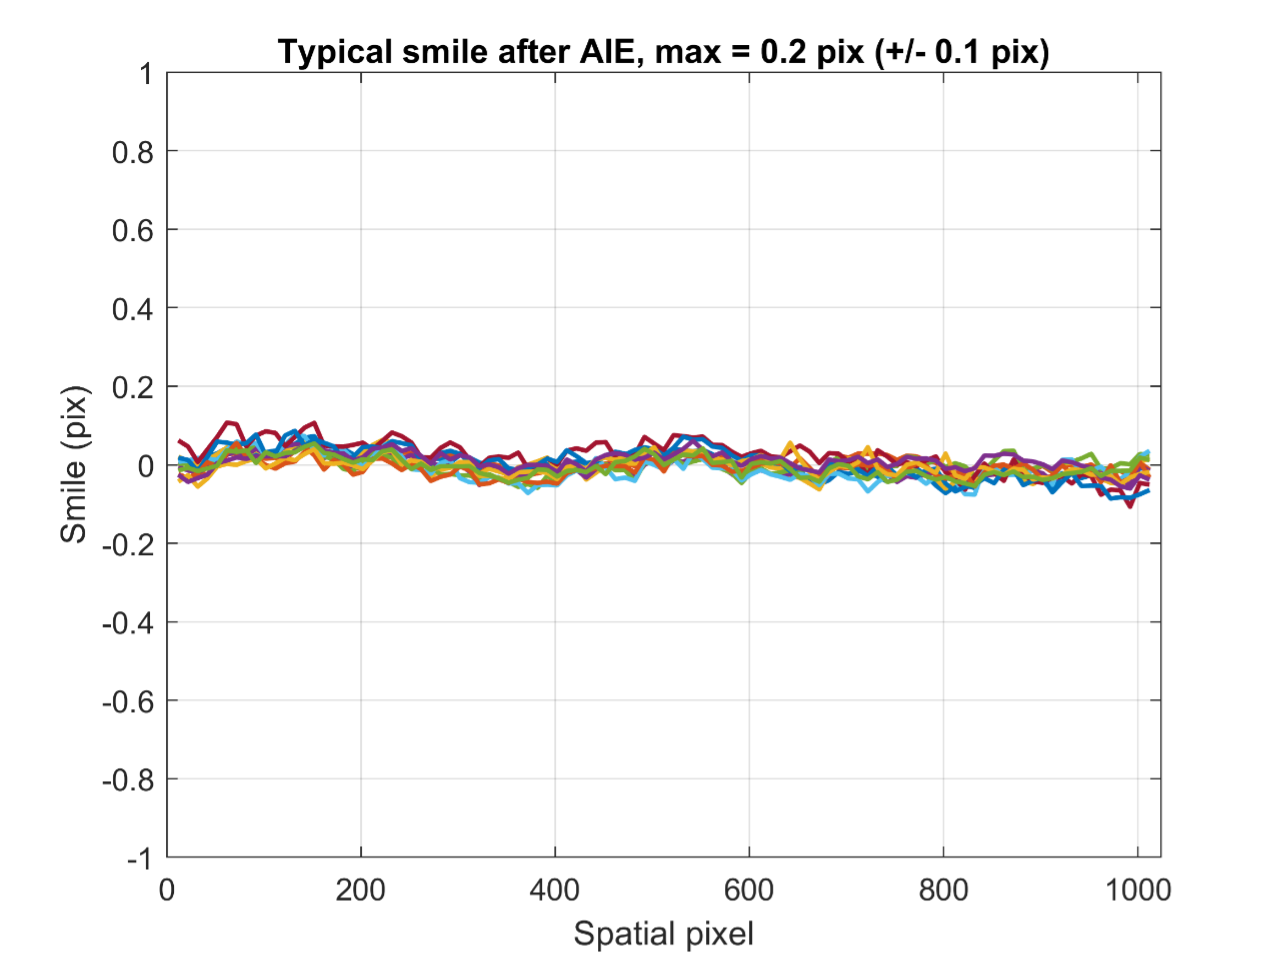 Figure 3: Typical smile after AIE correction, here for a Specim FX10 (which contains 1024 spatial pixels)